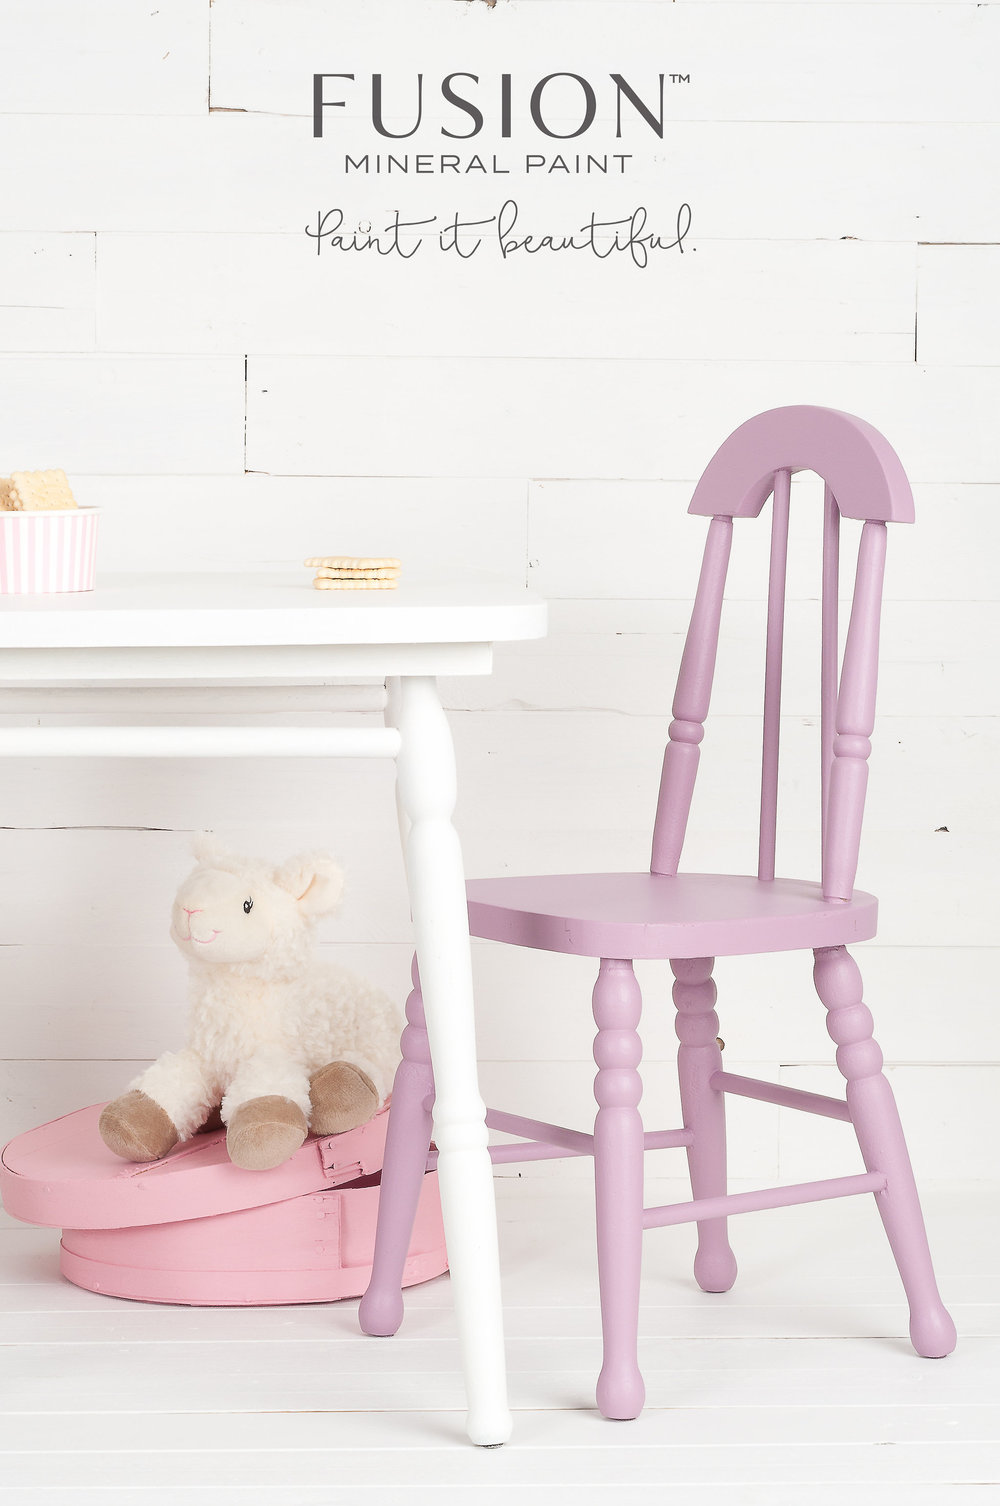 This little chair was painted a wonderful shade of mauve by using a custom blend of Fusion Mineral Paint. Fusion has 32 recipes available so that you can mix paint to create many wonderful colours like this one.